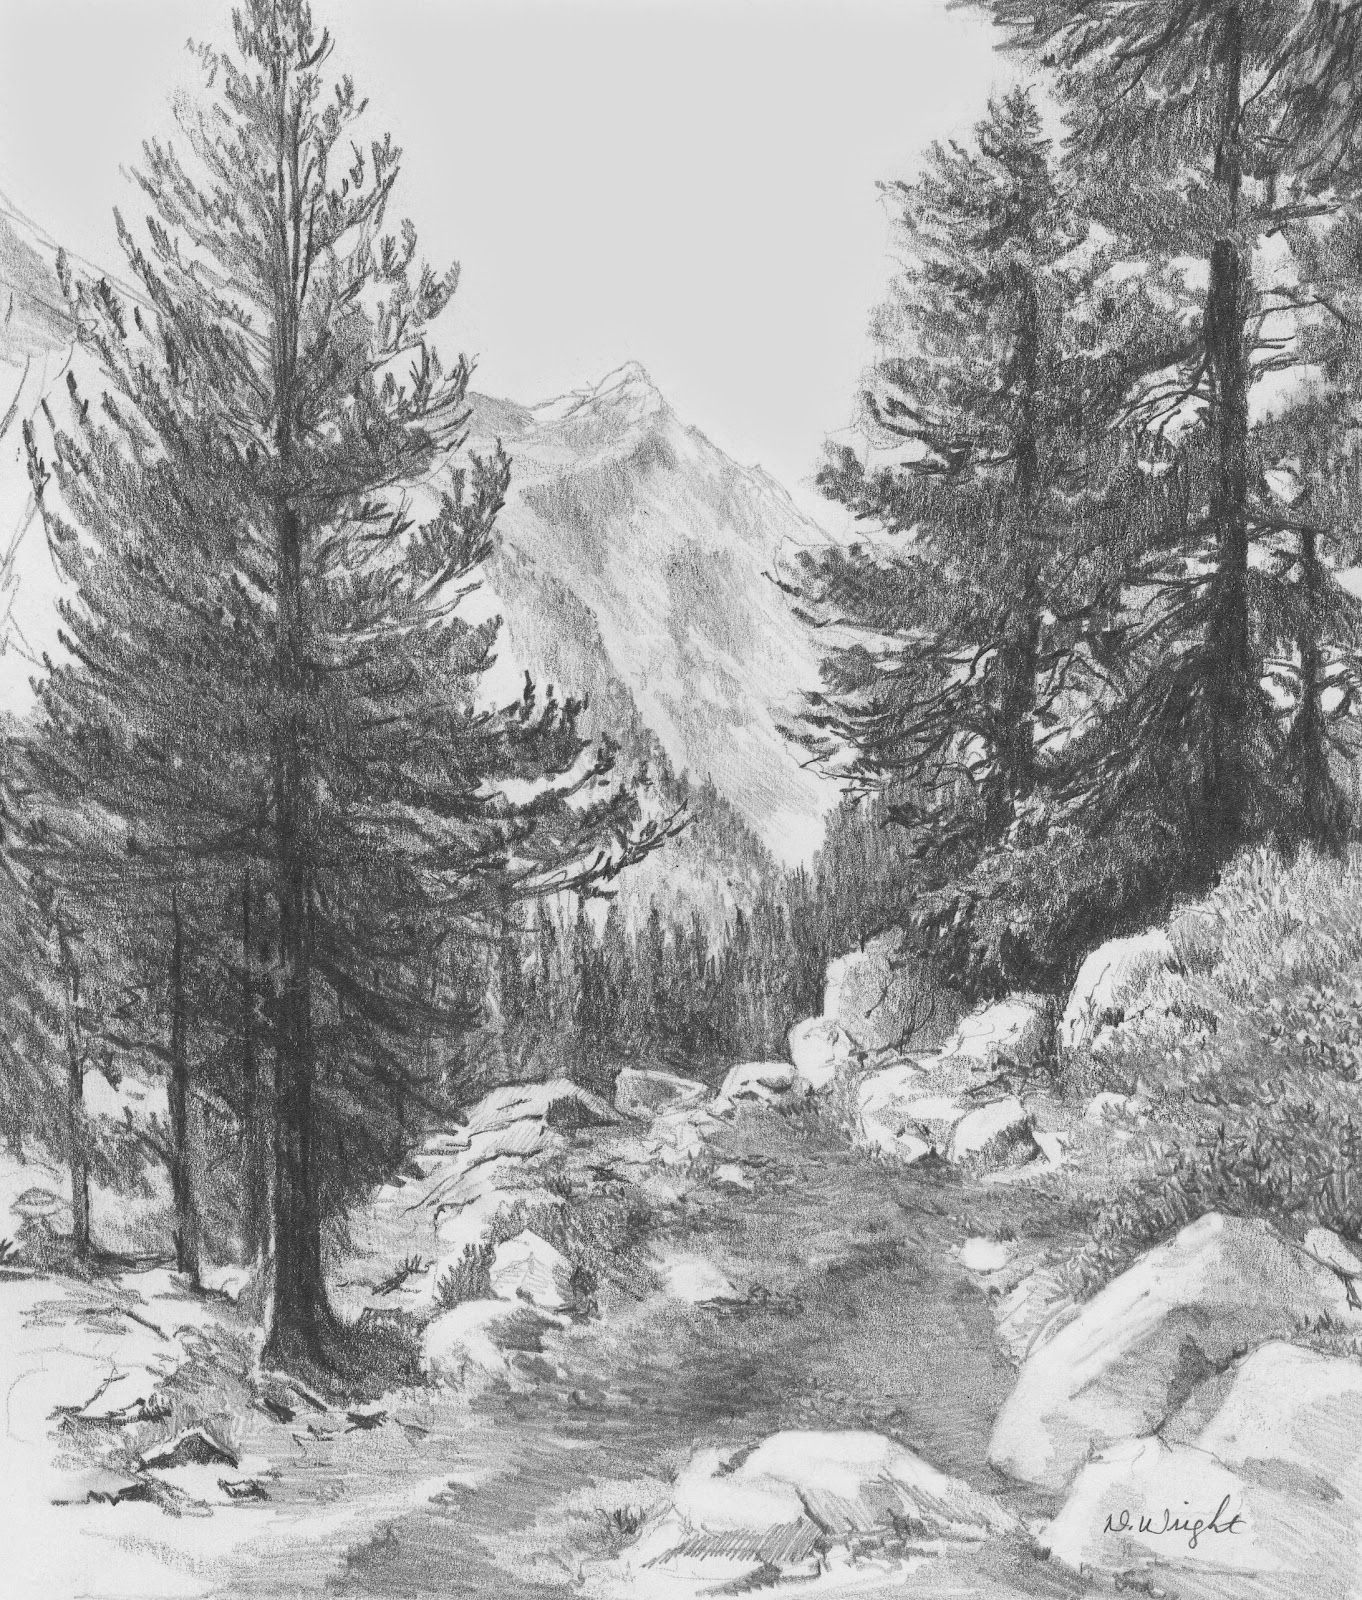 Landscape Drawings in Pencil | Re)Introducing Pencils.com ...